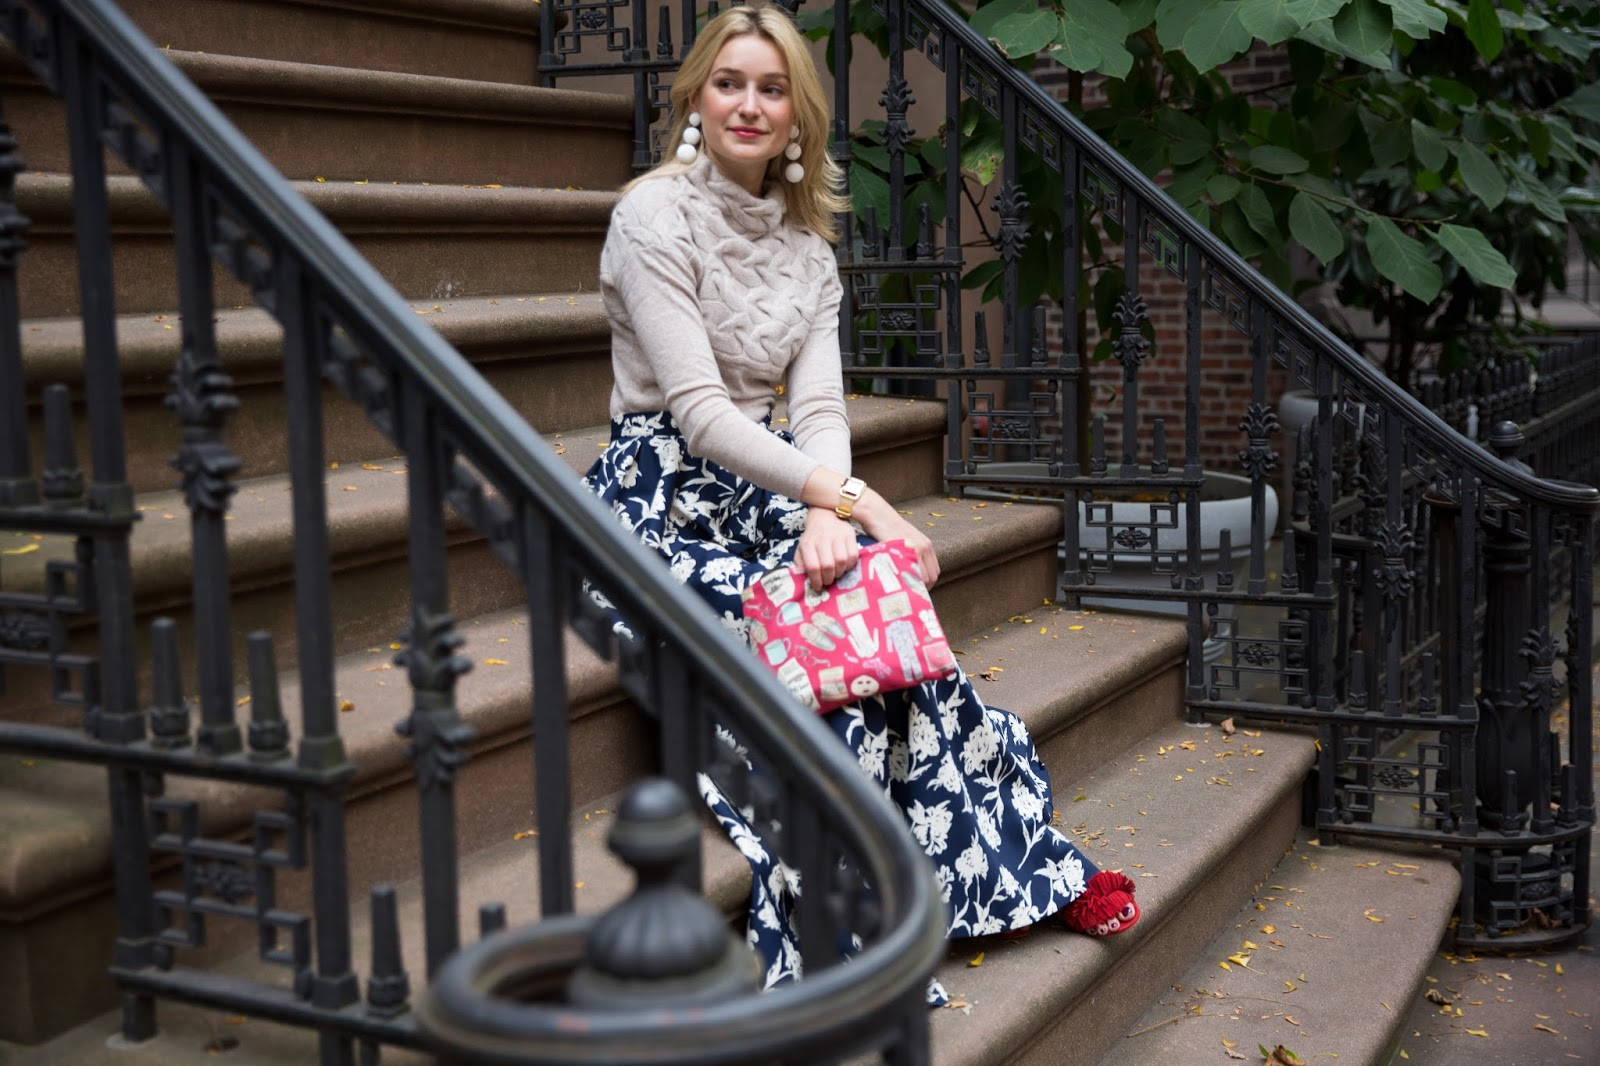 The Best Ensemble for a Broadway Show - New York Blonde